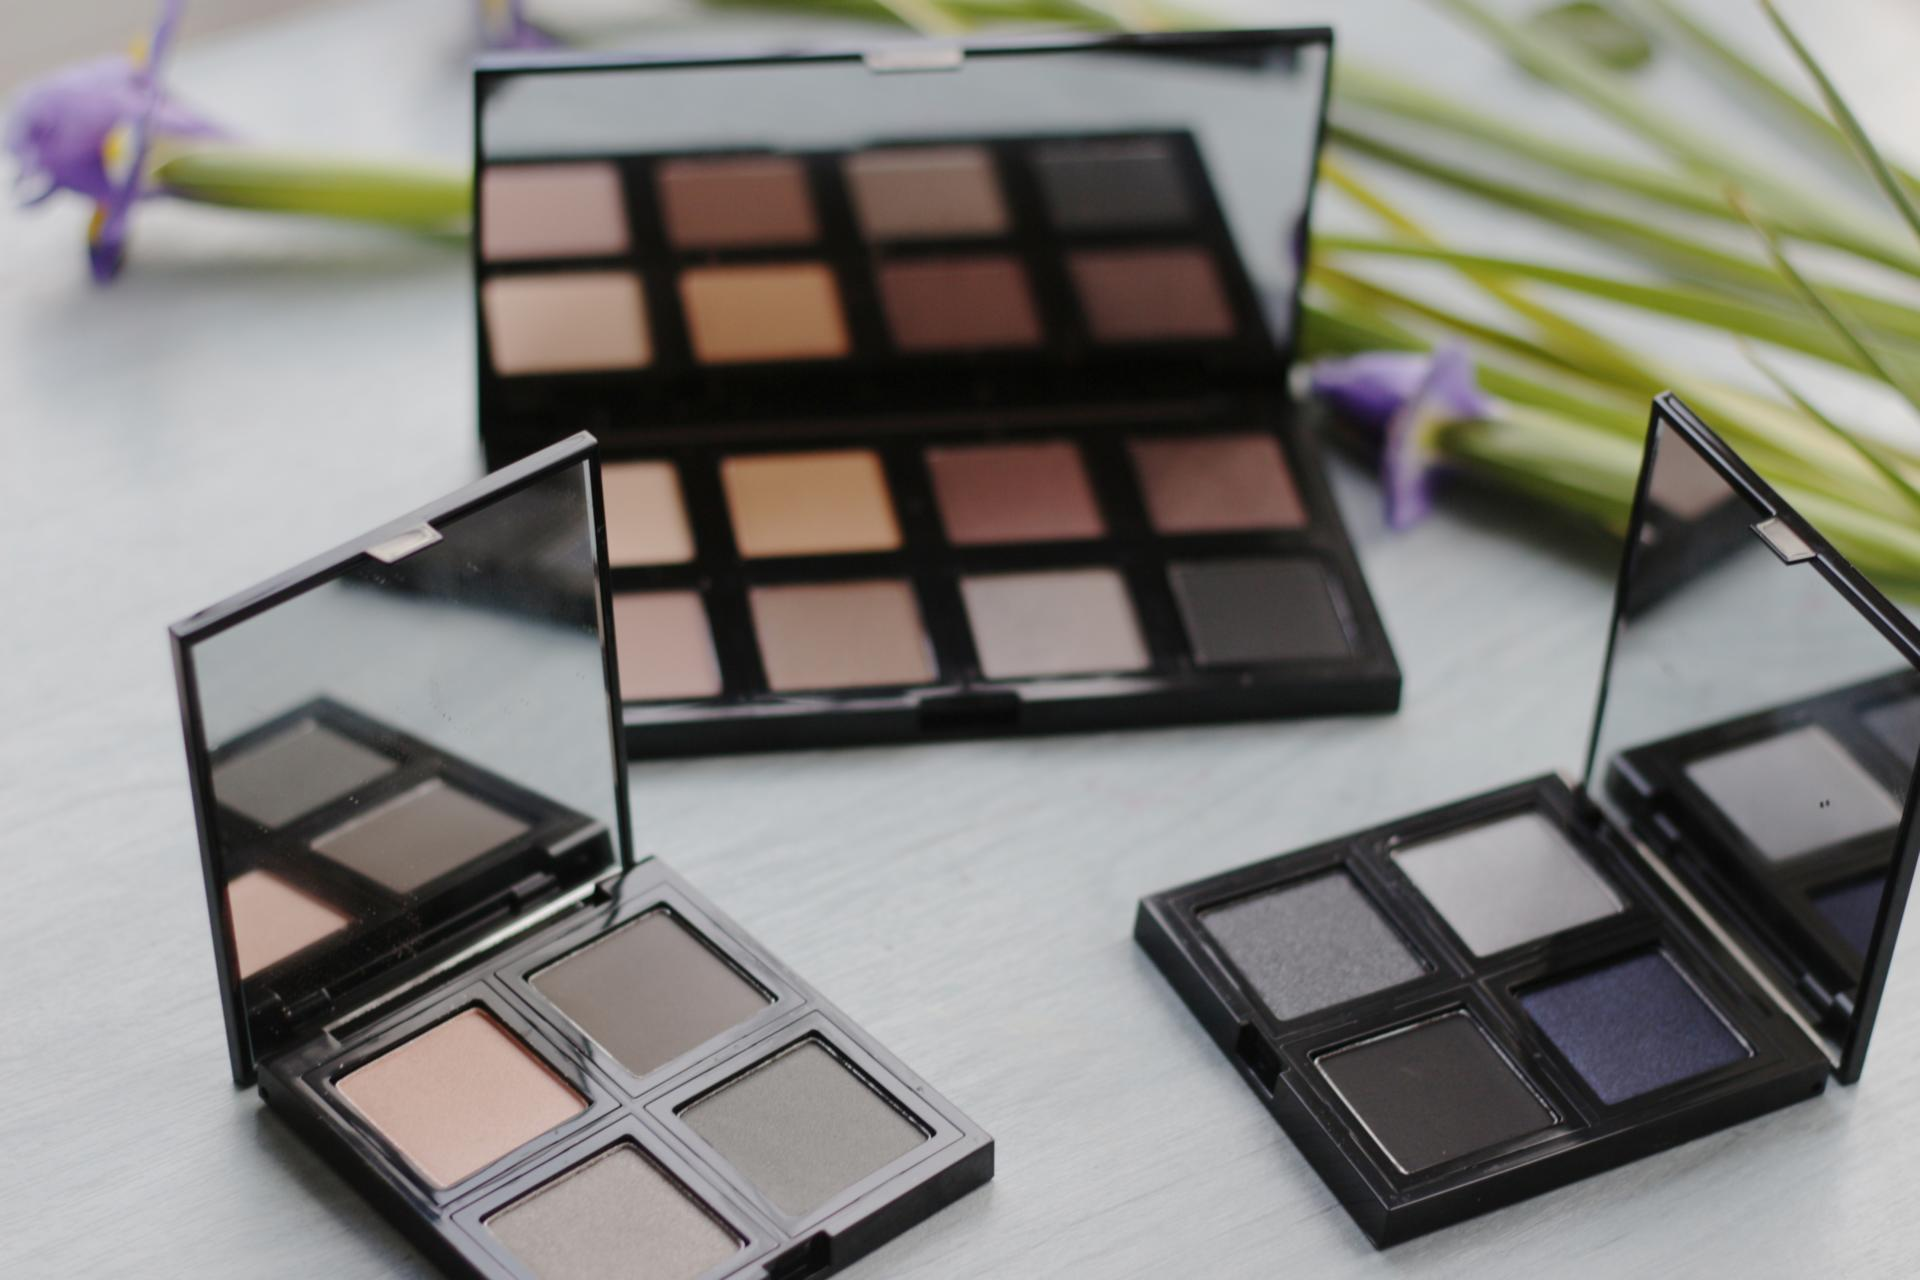 The Body Shop Down To Earth Eyeshadow Palettes Review